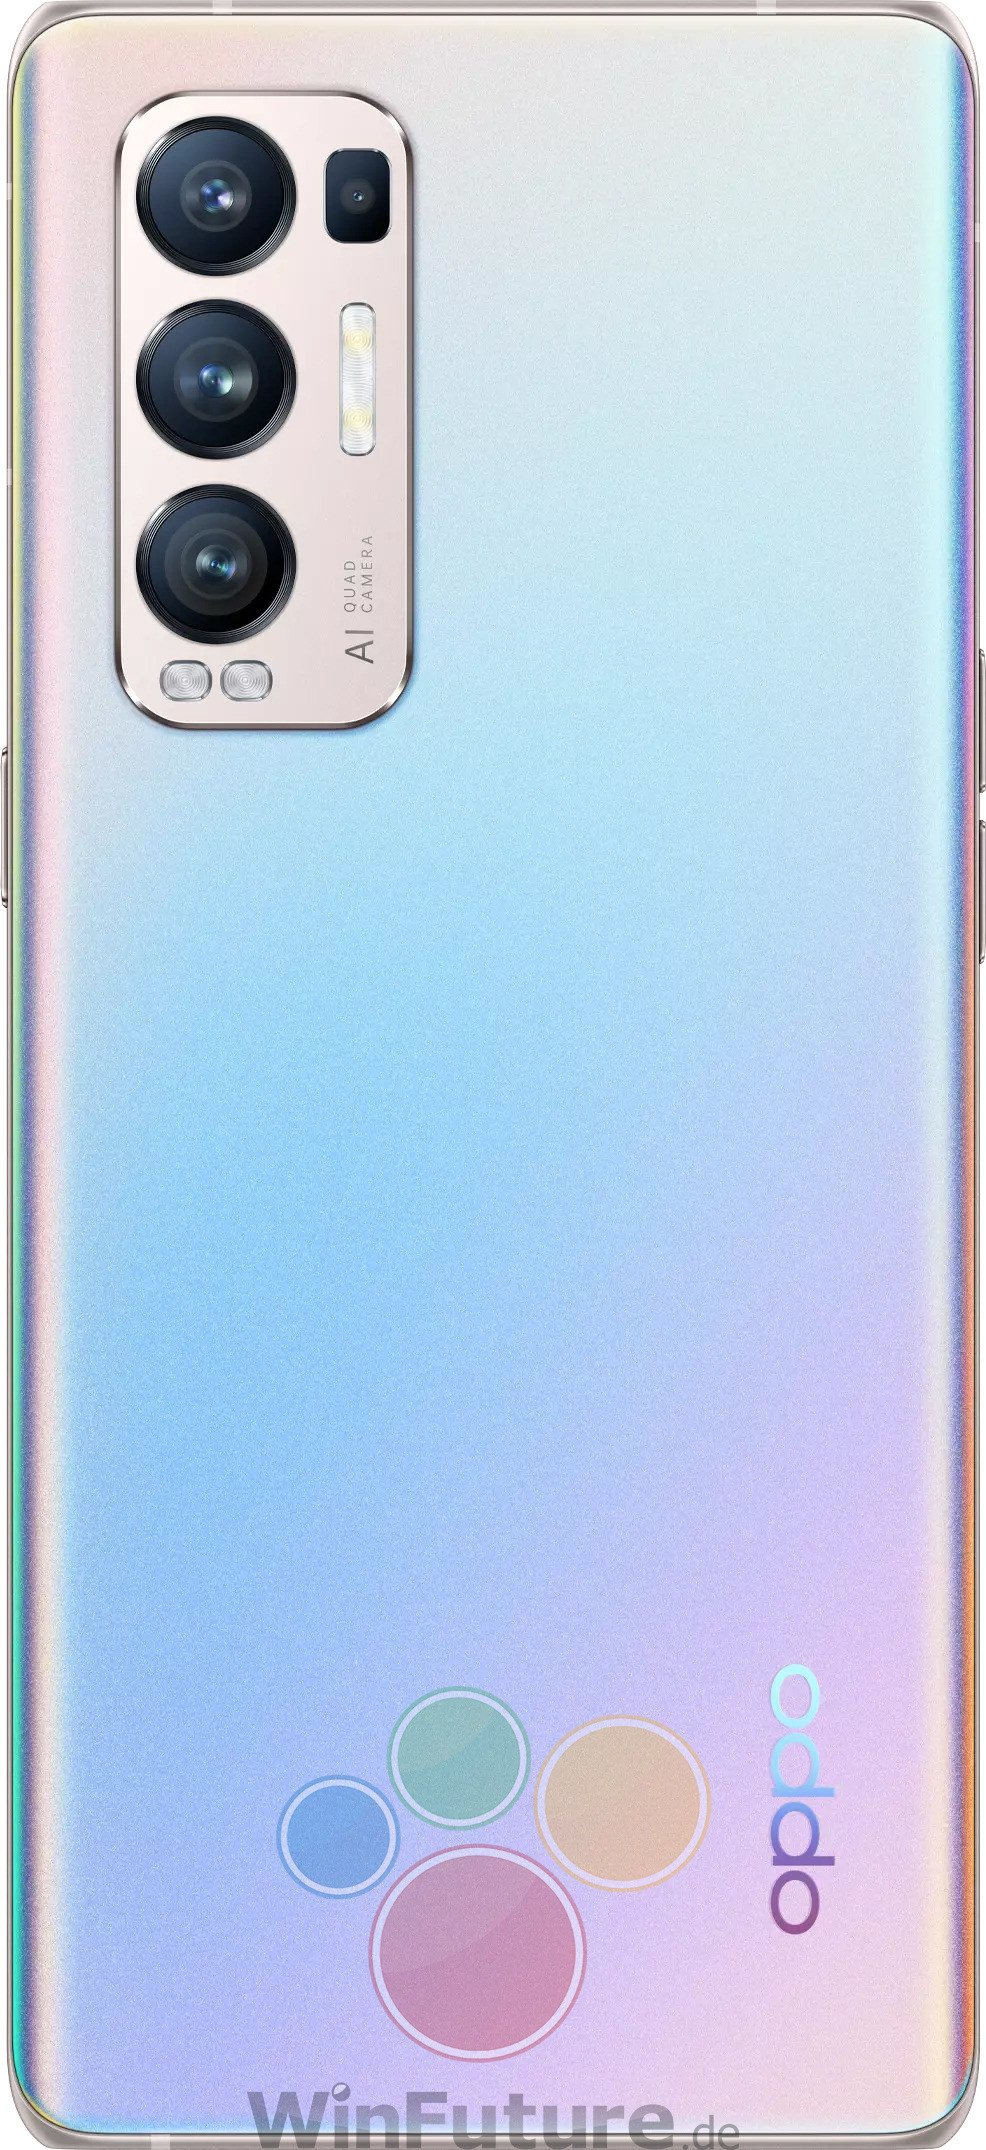 all-the-specs-of-oppo-find-x3-lite-x3-neo-and-x3-pro-have-been-revealed